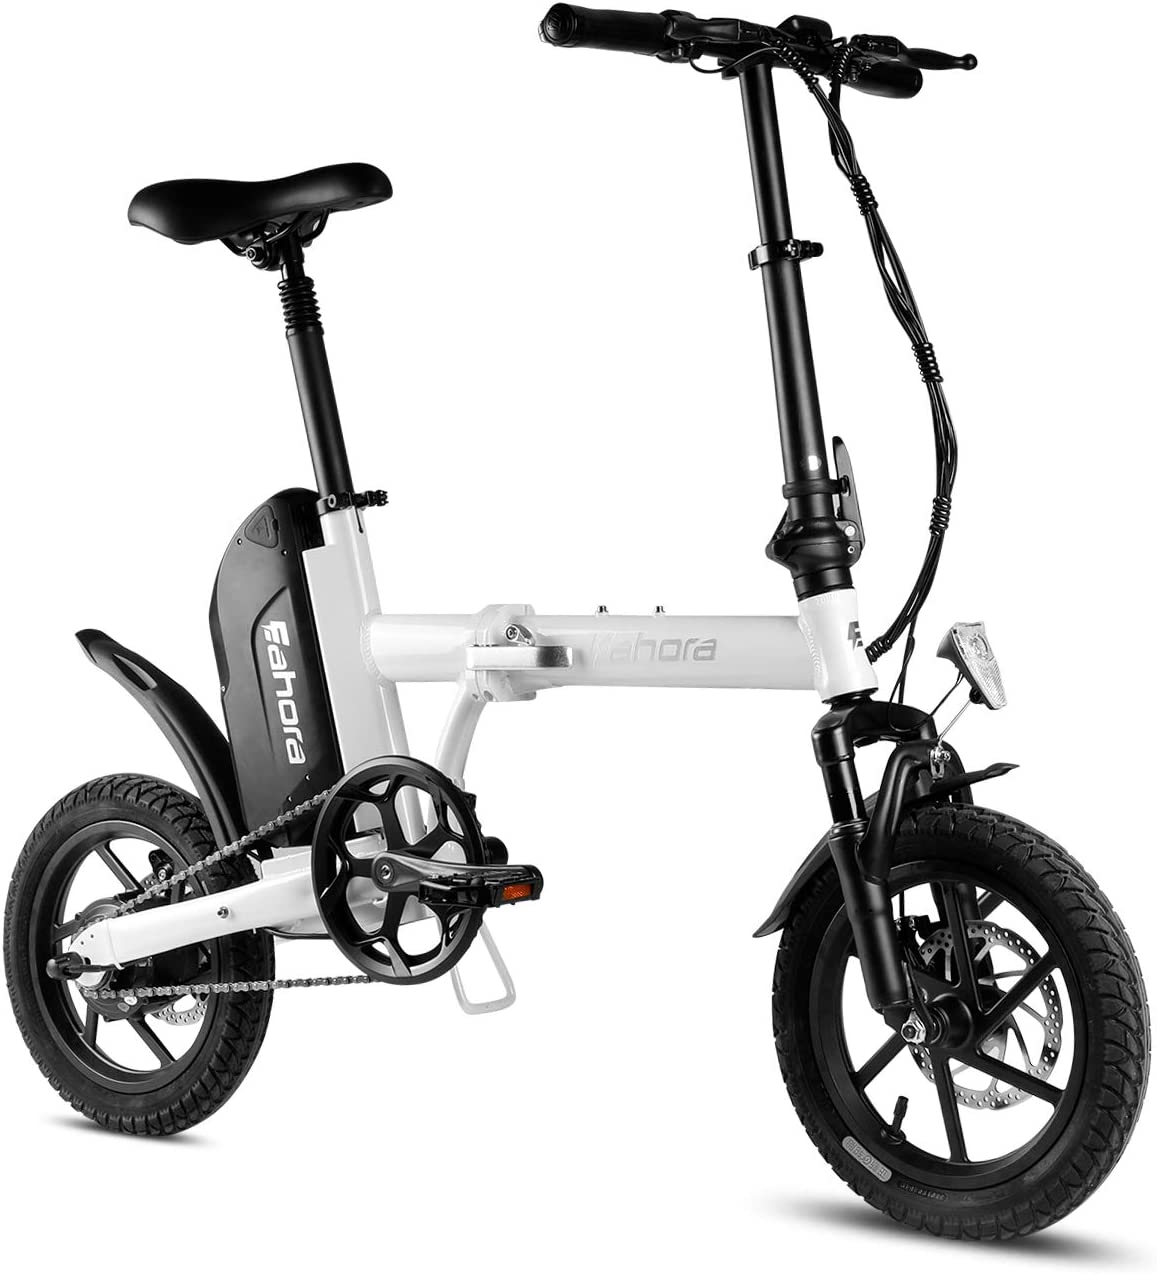 Eahora X3 Folding Electric Bike 14 Inch Mini Electric Bicycle 36V 10.4Ah Removable Lithium-Ion Battery 350W Motor 3 Modes Energy Saving Transmission System